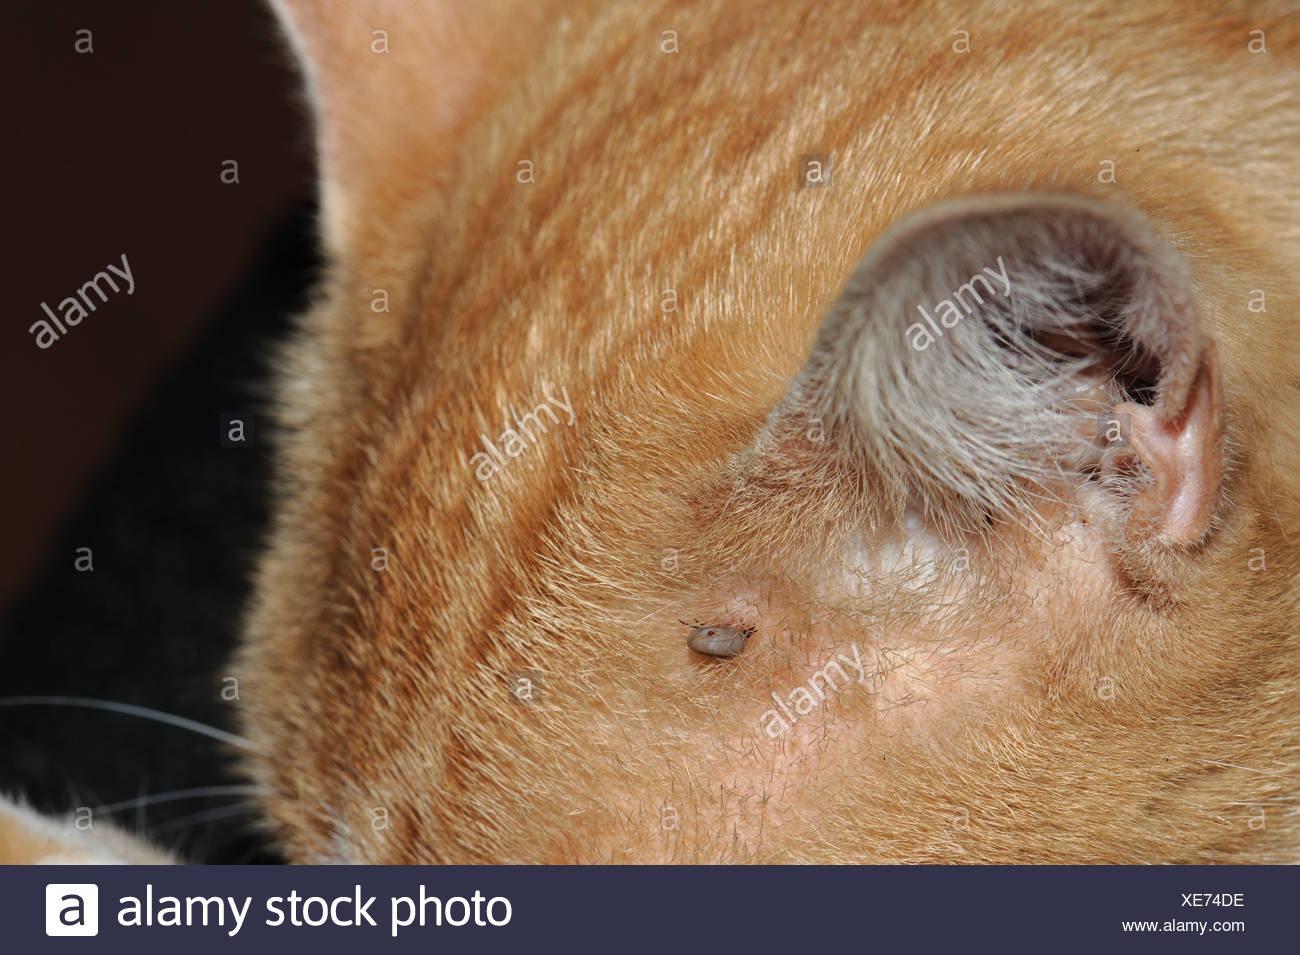 Sheep tick Ixodes ricinus not fully dilated but attached to a young cat - Stock Image